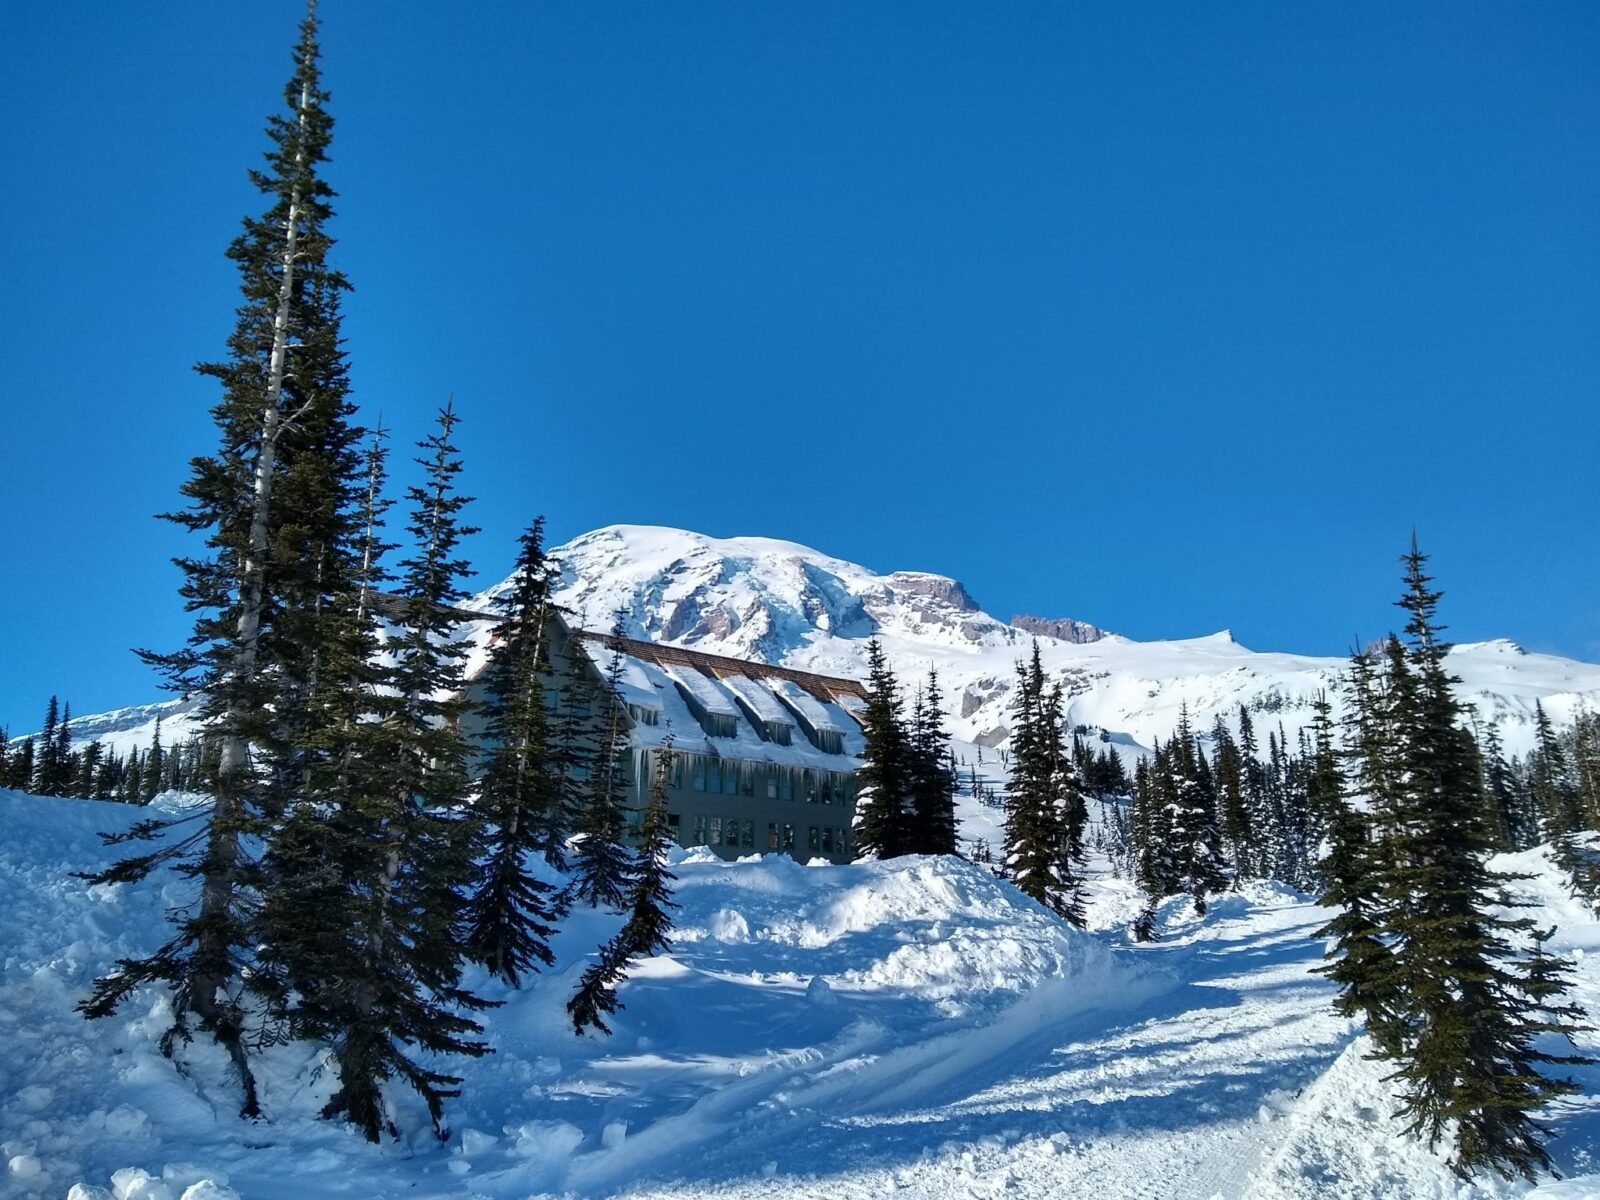 Large snow covered mountain with a  historic lodge in the foreground and evergreen trees with deep snow on  a sunny day. Text reads: Spring snowshoeing Mt Rainier